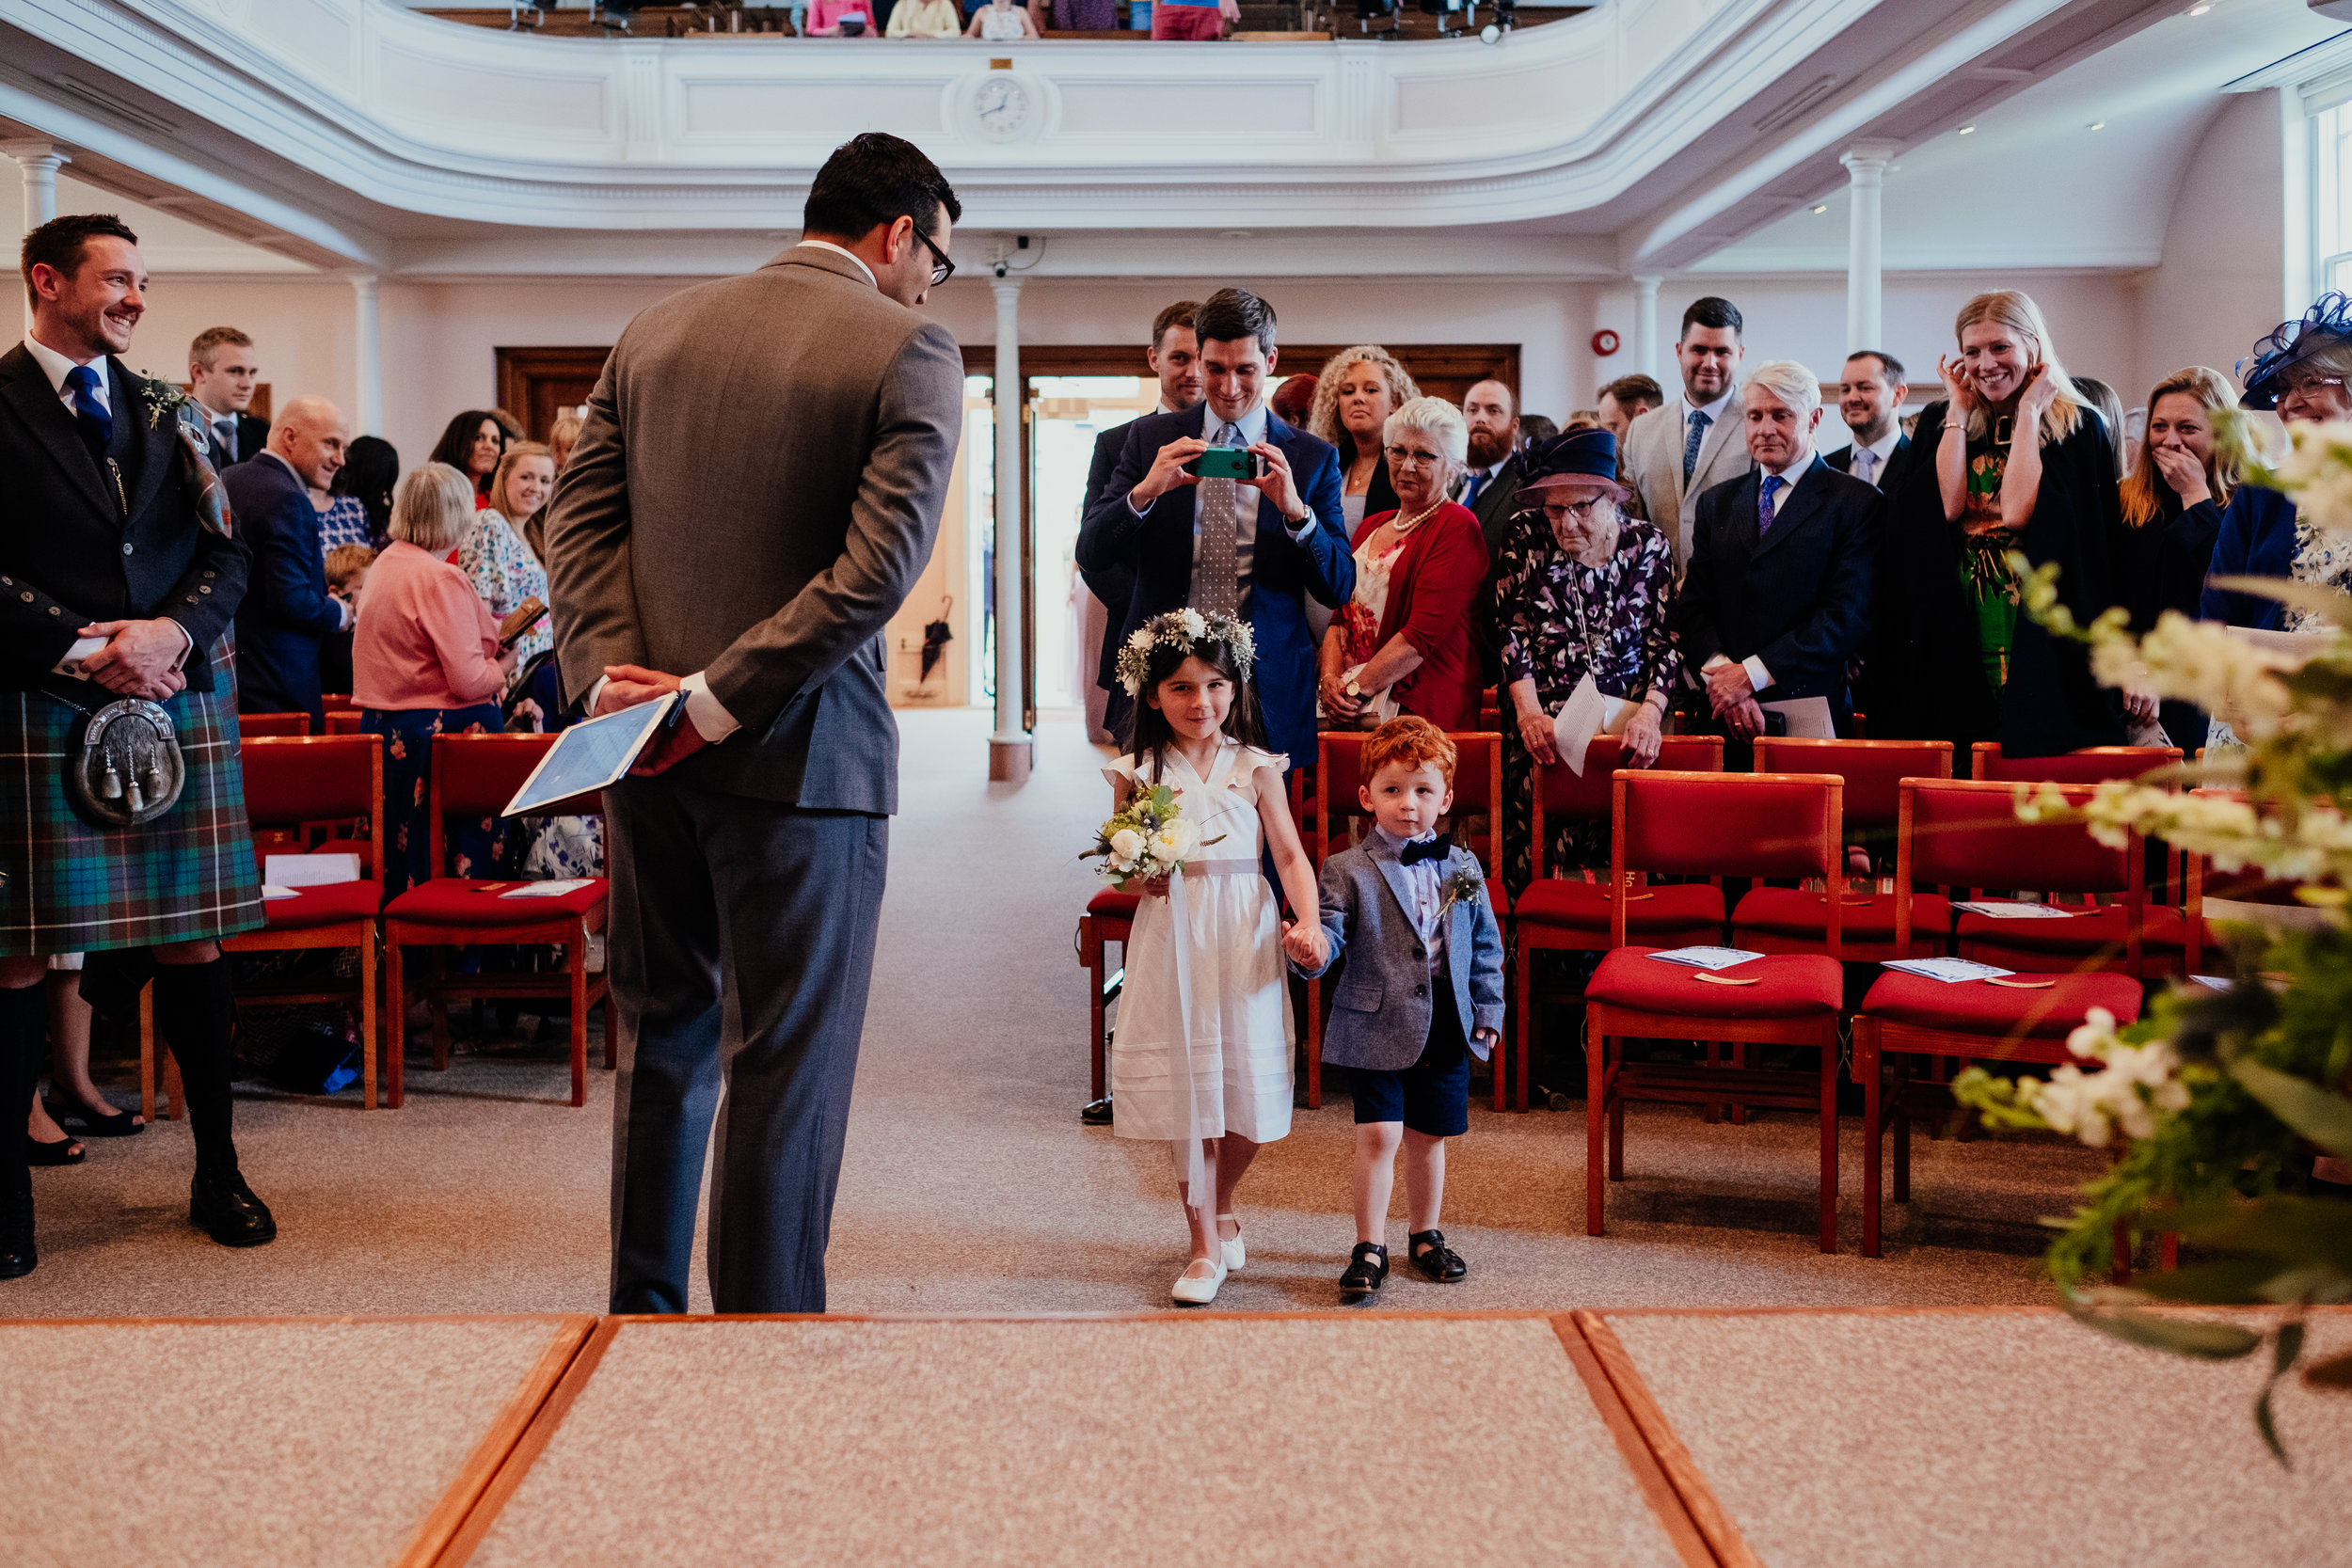 Groom and wedding guests smile at flower girl and page boy as they walk down the aisle